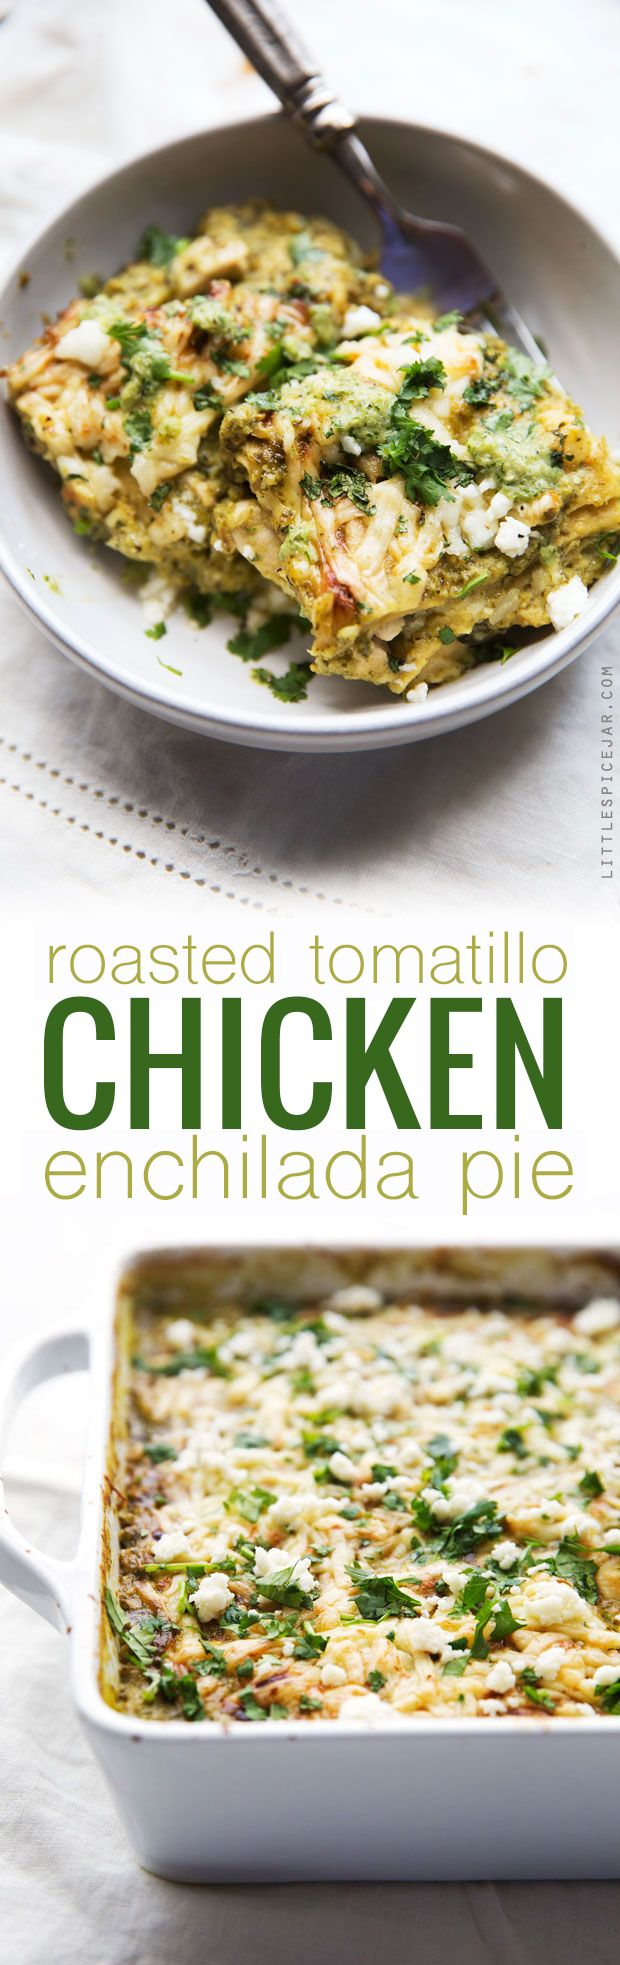 Roasted Tomatillo Chicken Enchilada Pie - A simple homemade tomatillo cream sauce layered in with tortillas and cooked chicken.